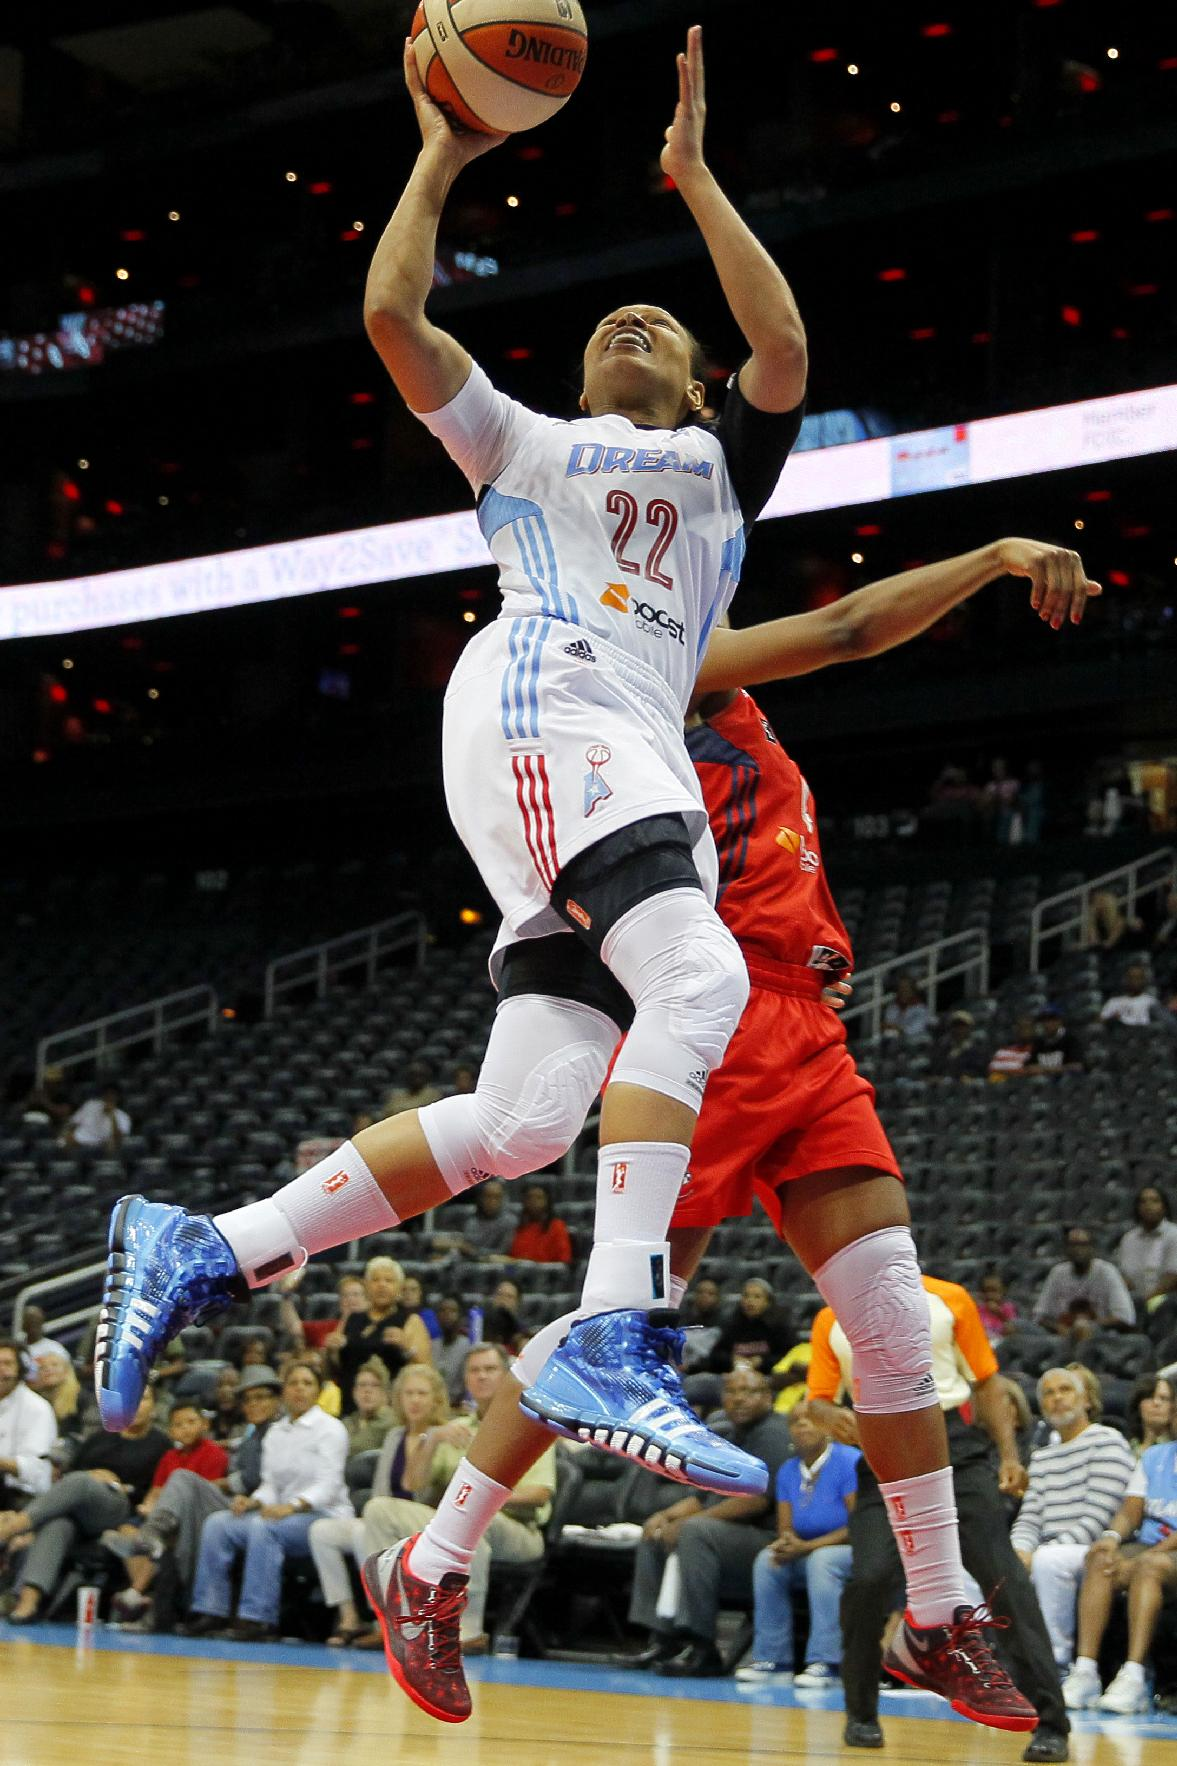 Atlanta Dream's Armintie Herrington (22) shoots against the Washington Mystics in the first quarter of Game 1 of a WNBA basketball Eastern Conference semifinals series, Thursday, Sept. 19, 2013, in Atlanta